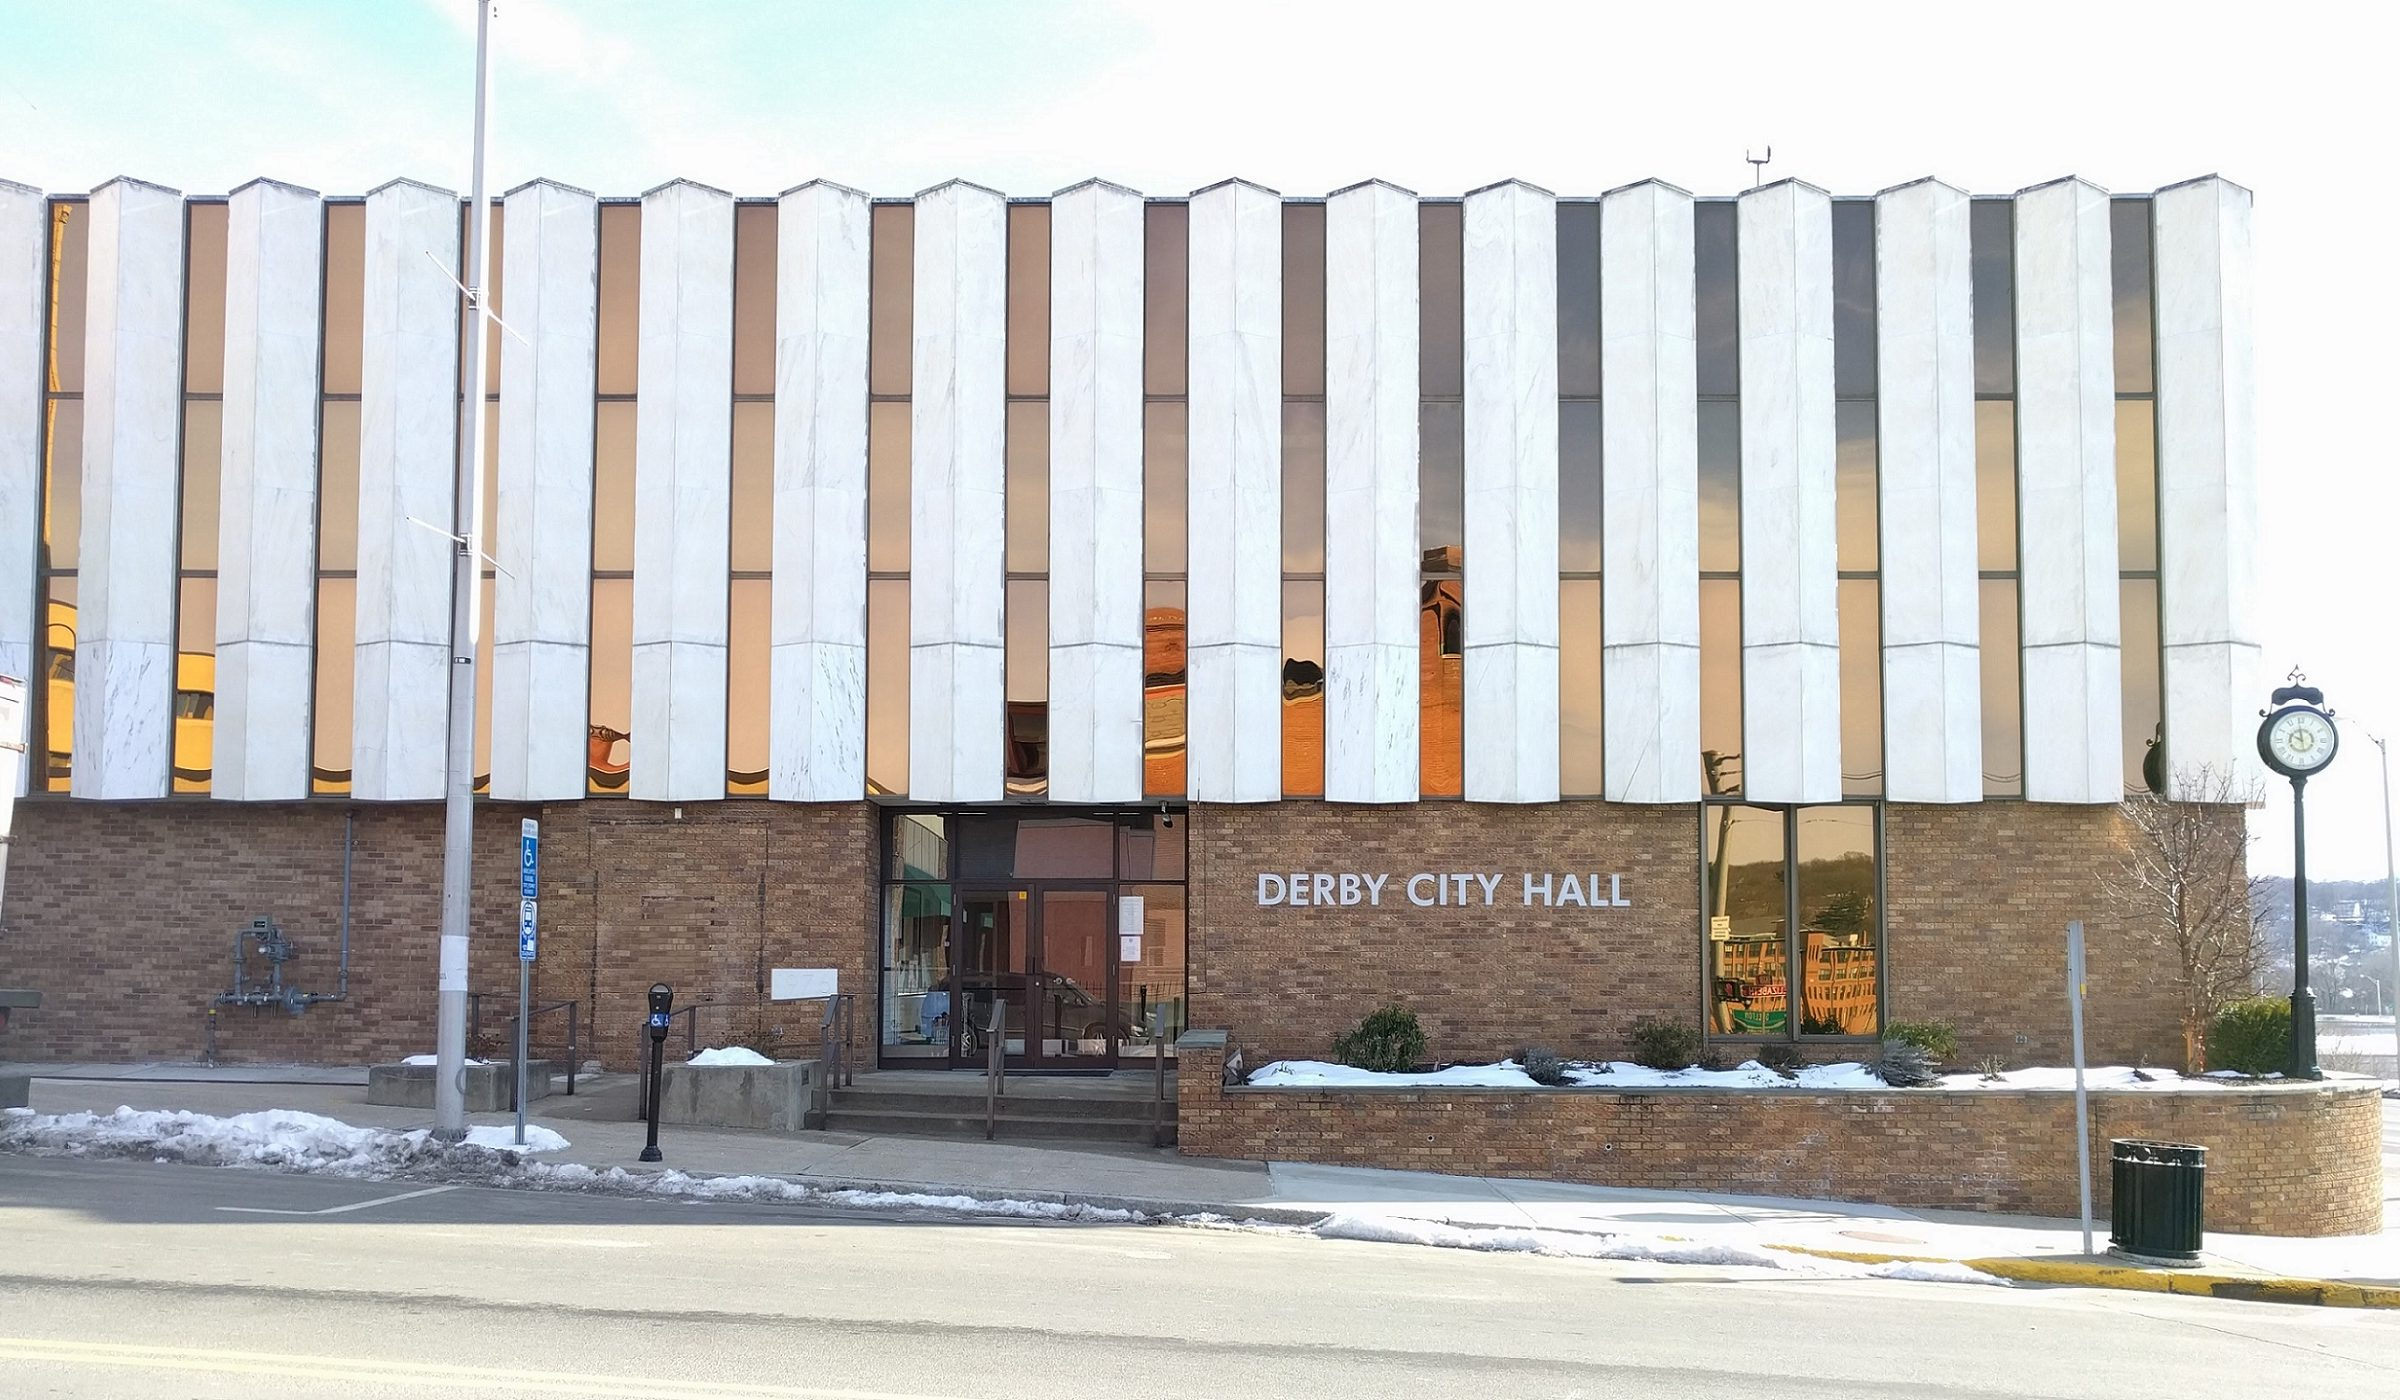 Derby City Hall